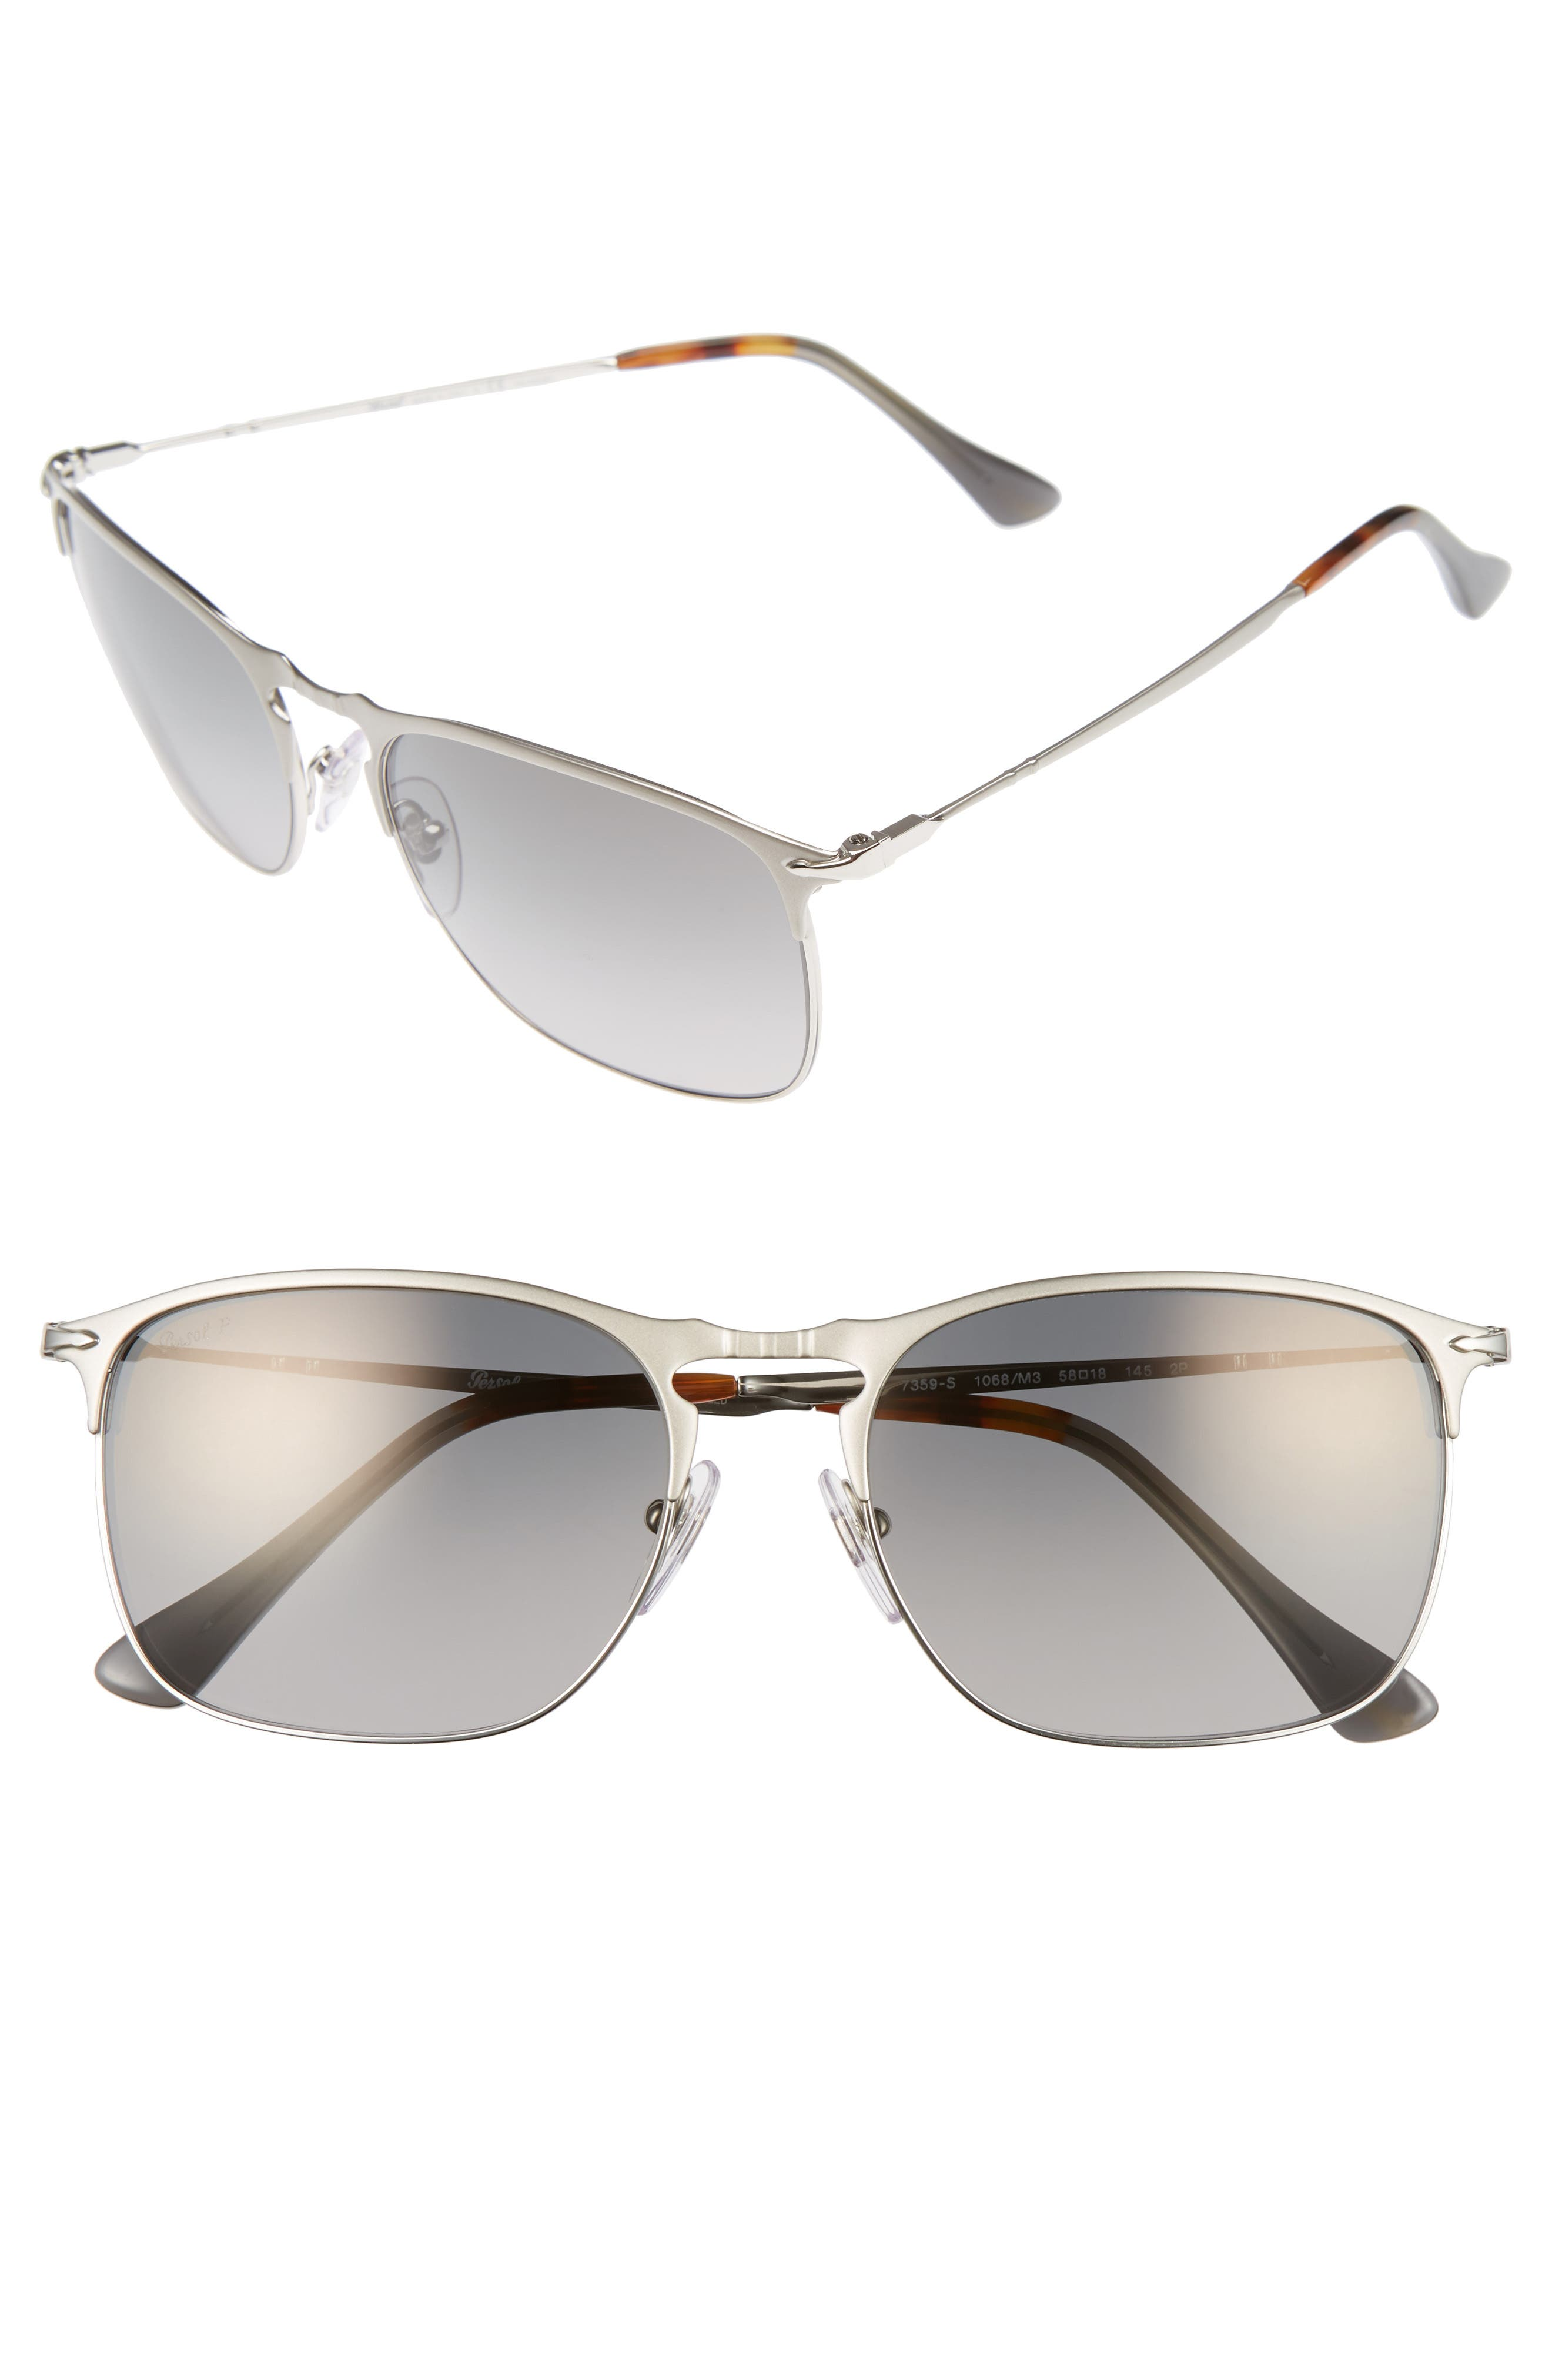 Evolution 58mm Polarized Aviator Sunglasses,                         Main,                         color, Silver